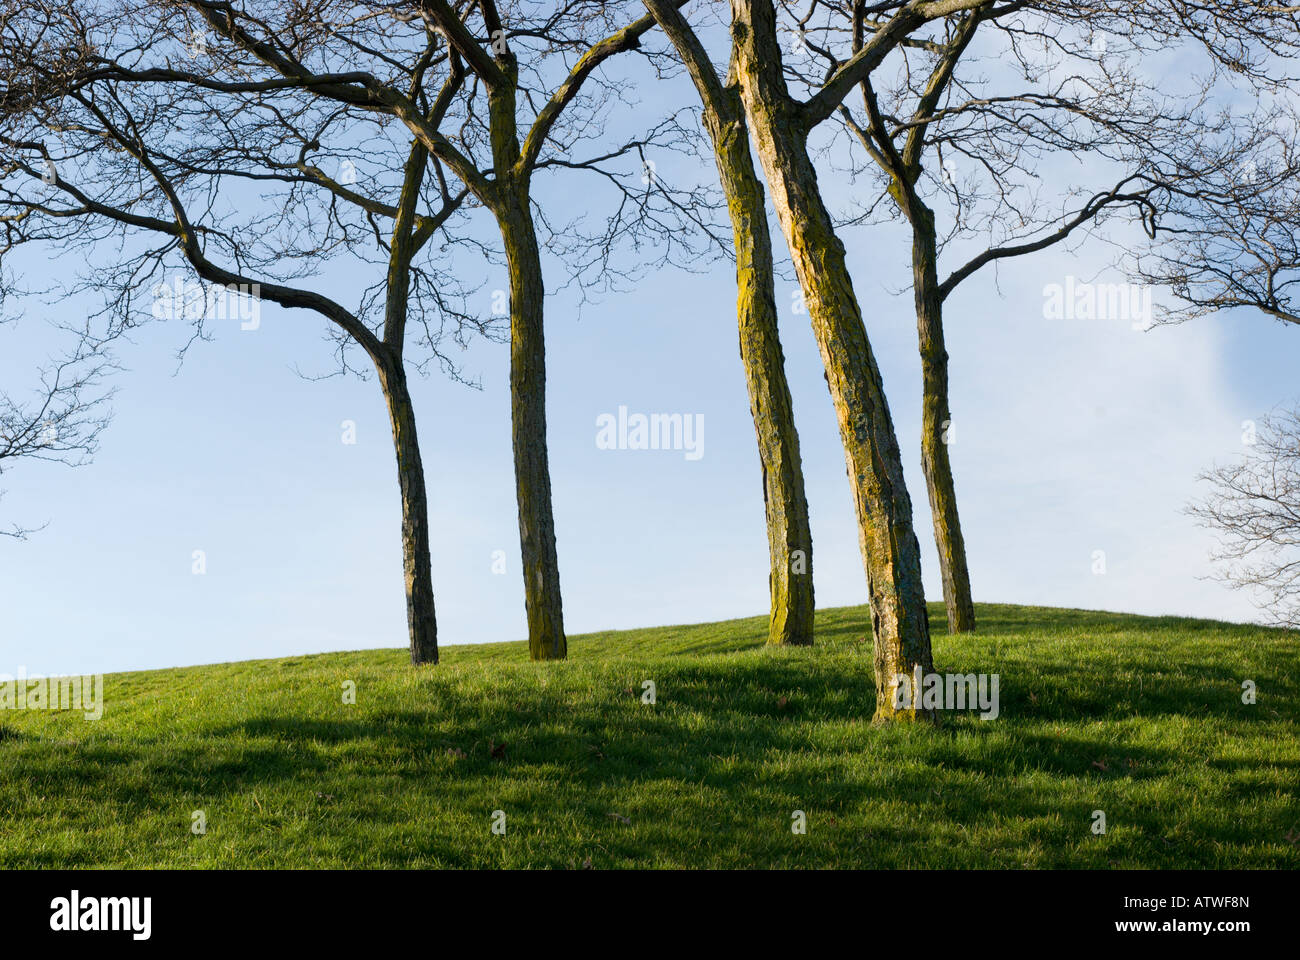 Grassy knoll with tree trunks and leafless branches - Stock Image